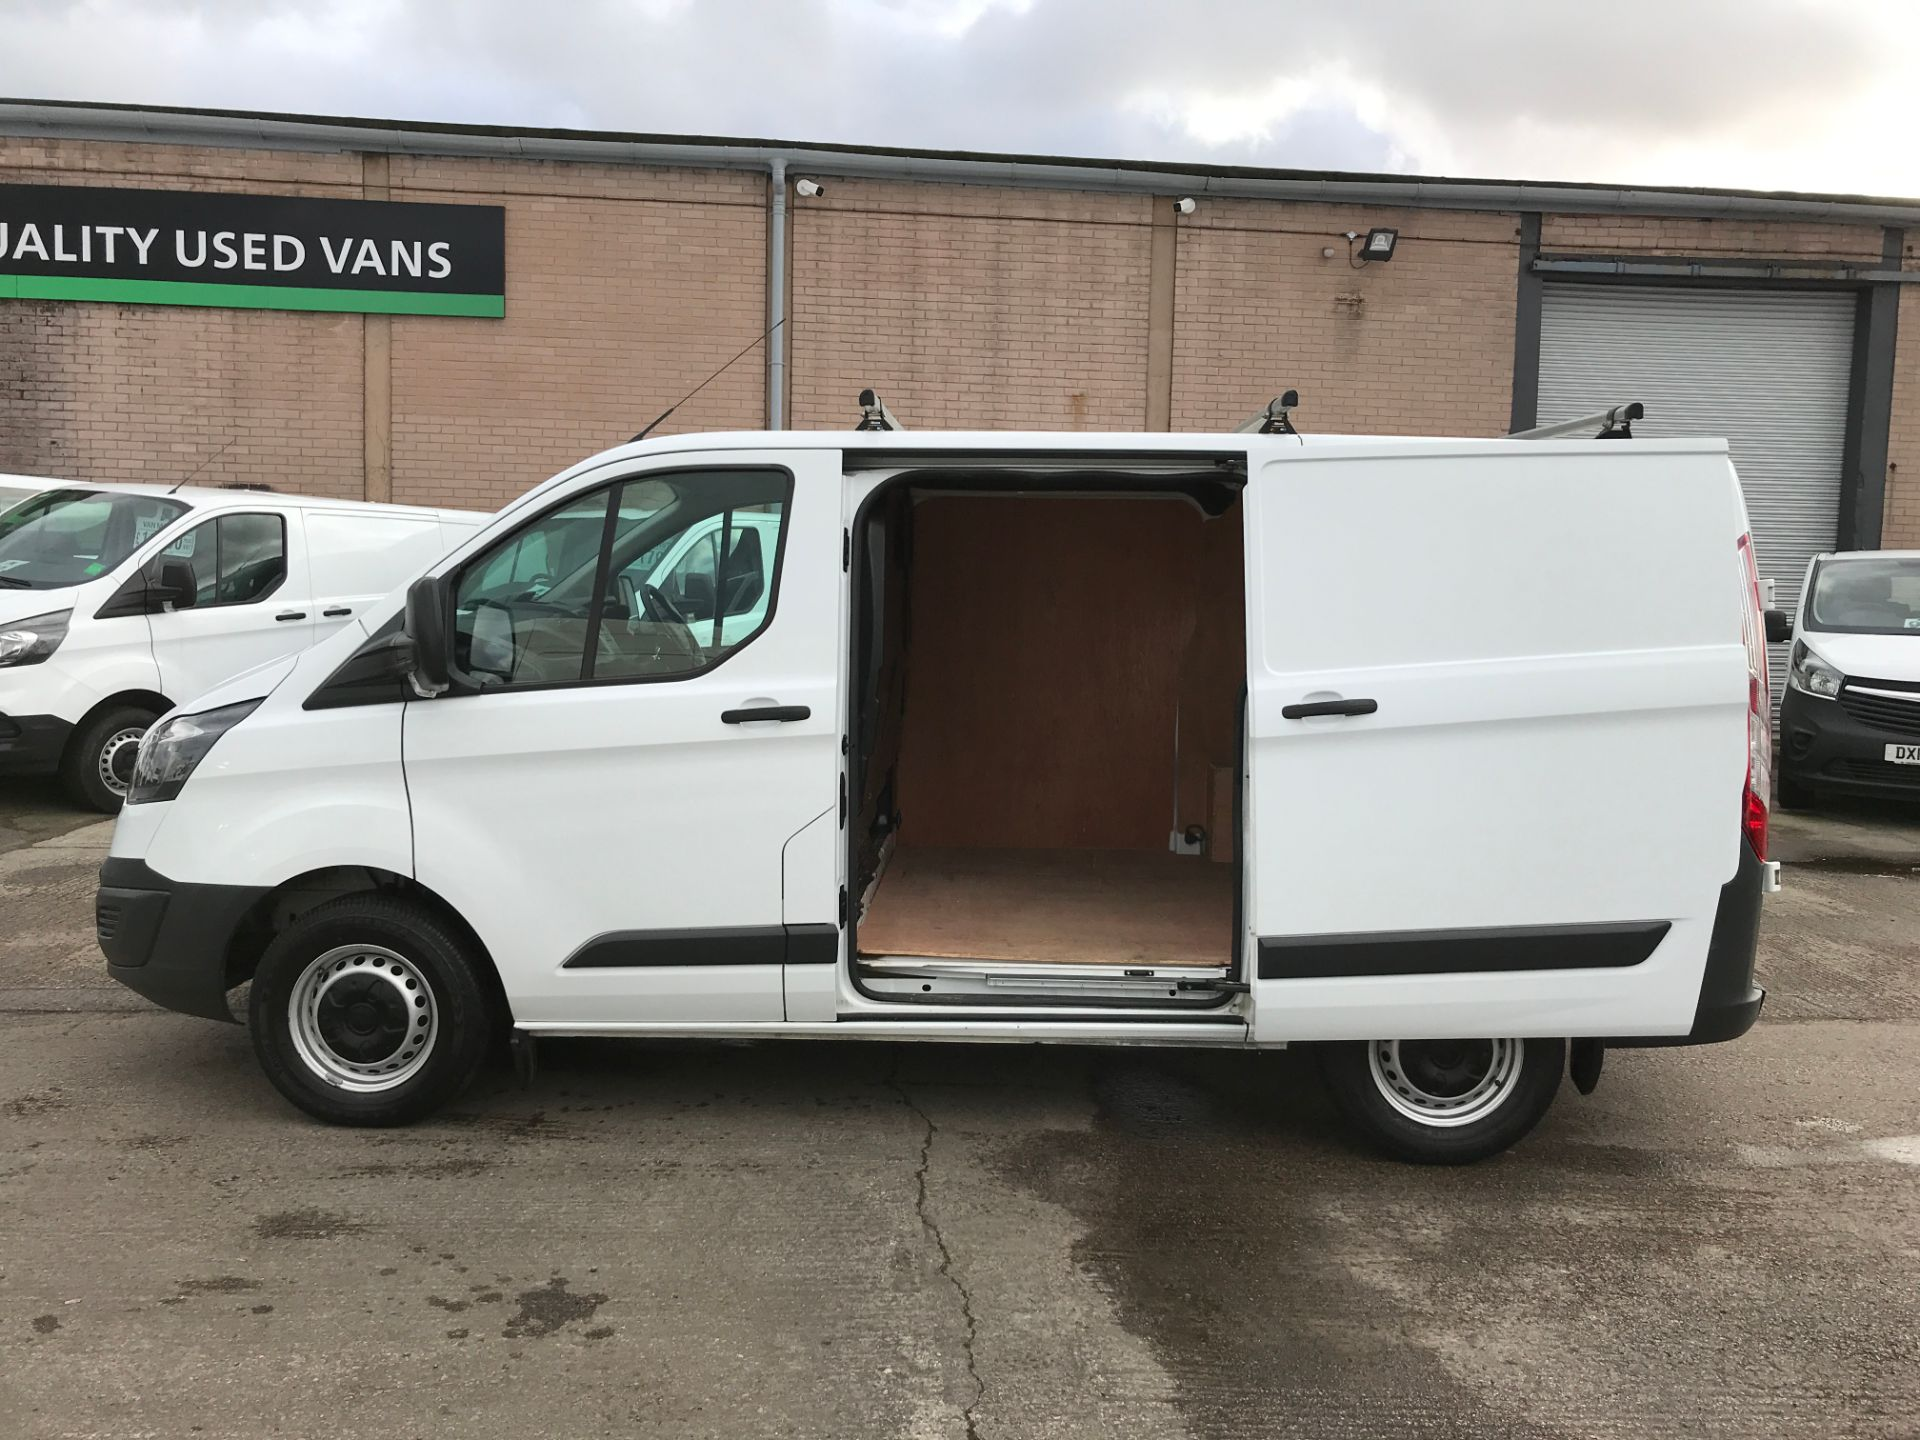 2017 Ford Transit Custom 290 L1 2.0TDCI 105PS LOW ROOF EURO 6 (FN17ZZU) Image 18